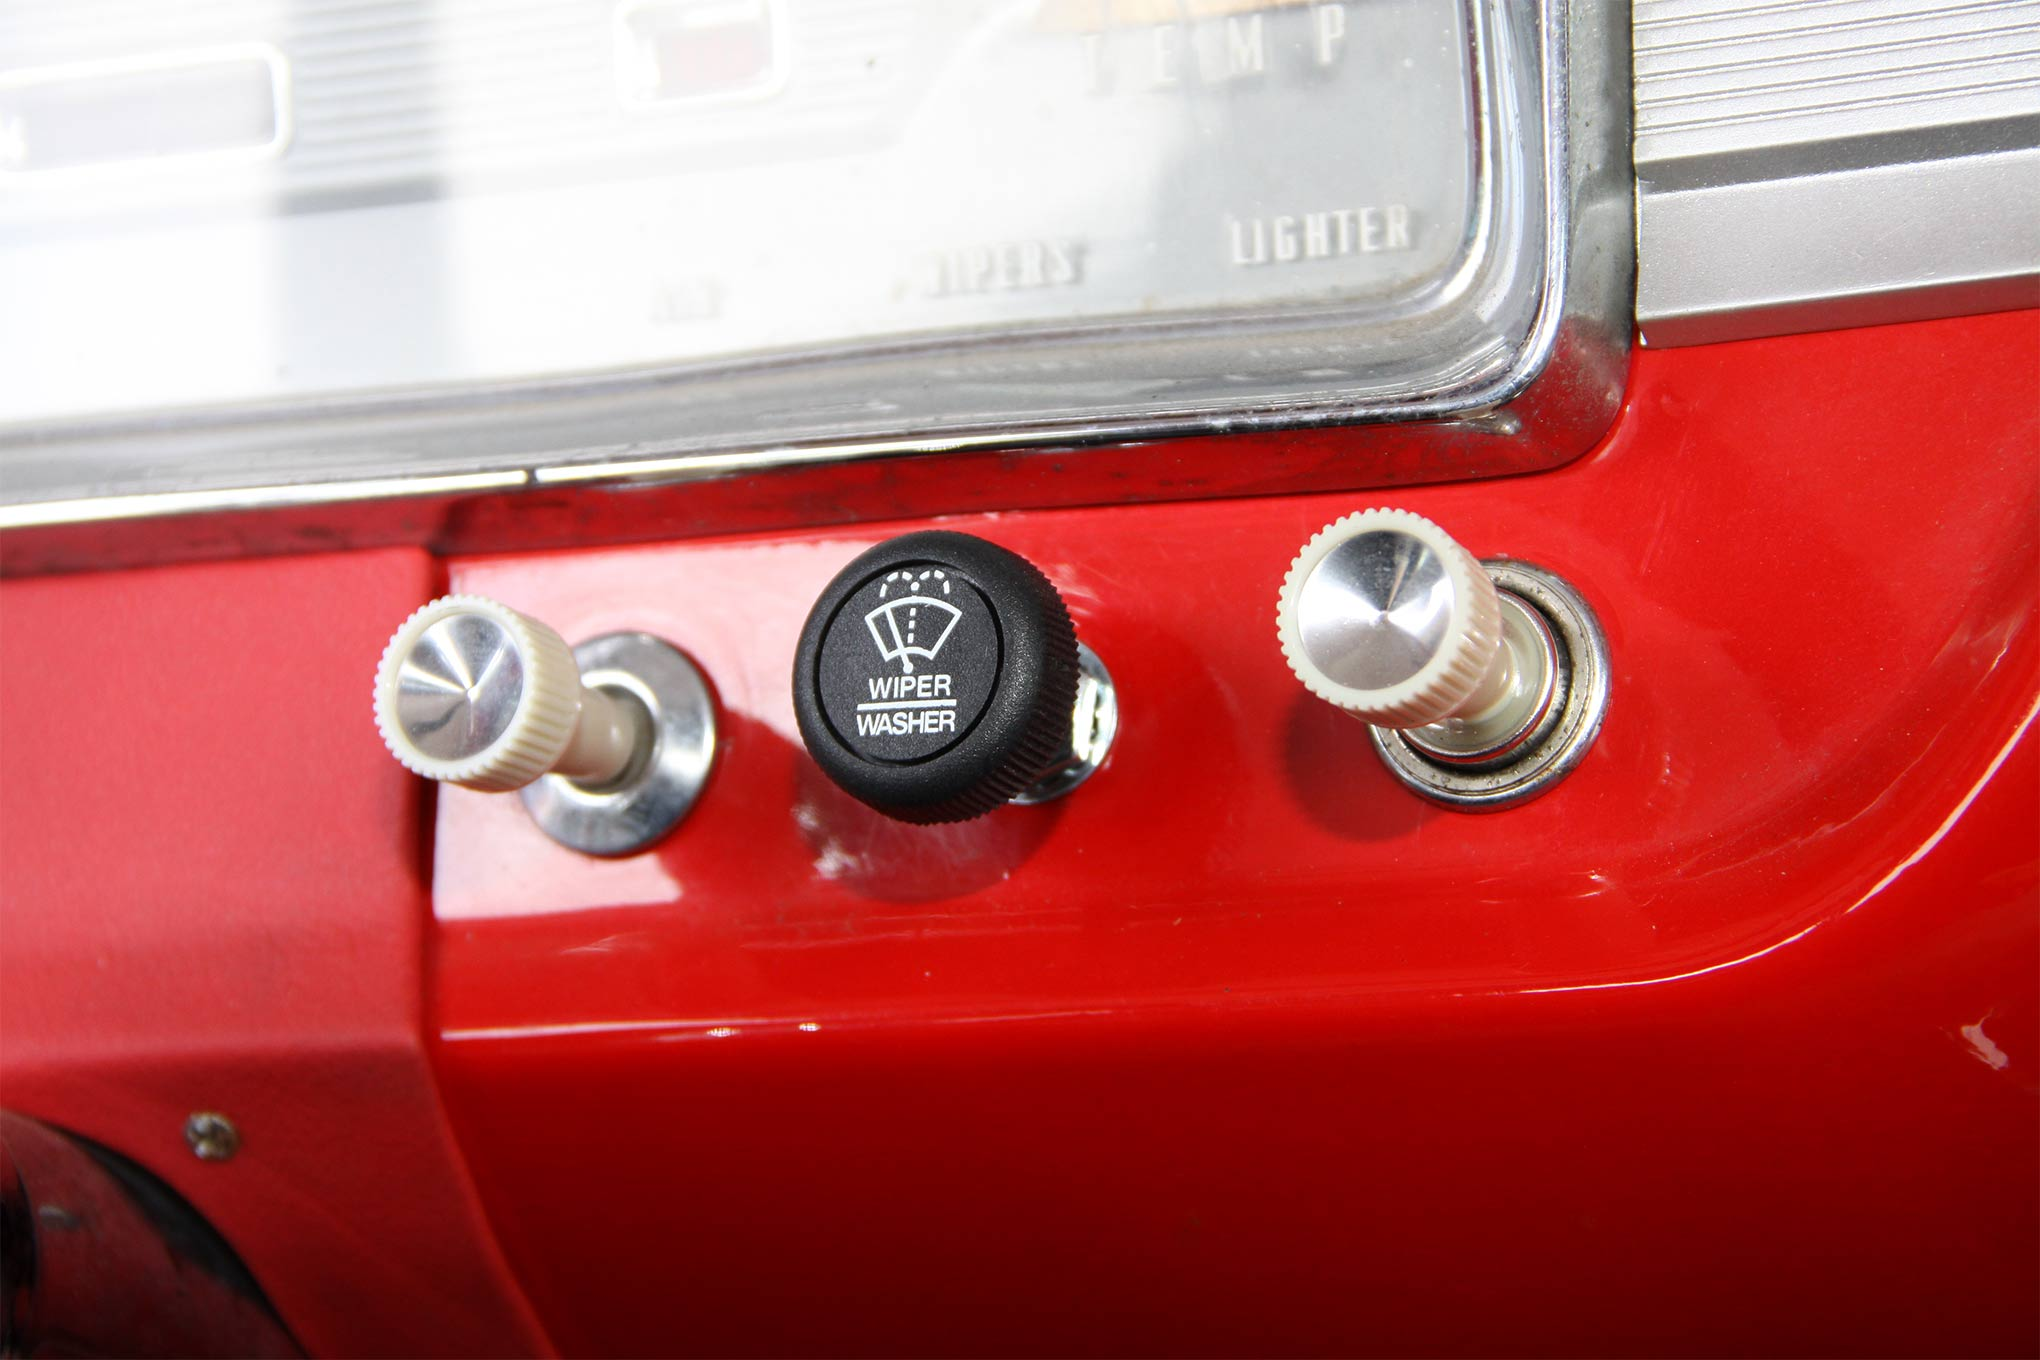 The new washer switch replaces the original. The stock knob wiper knob had been damaged—the plans are to find a replacement.